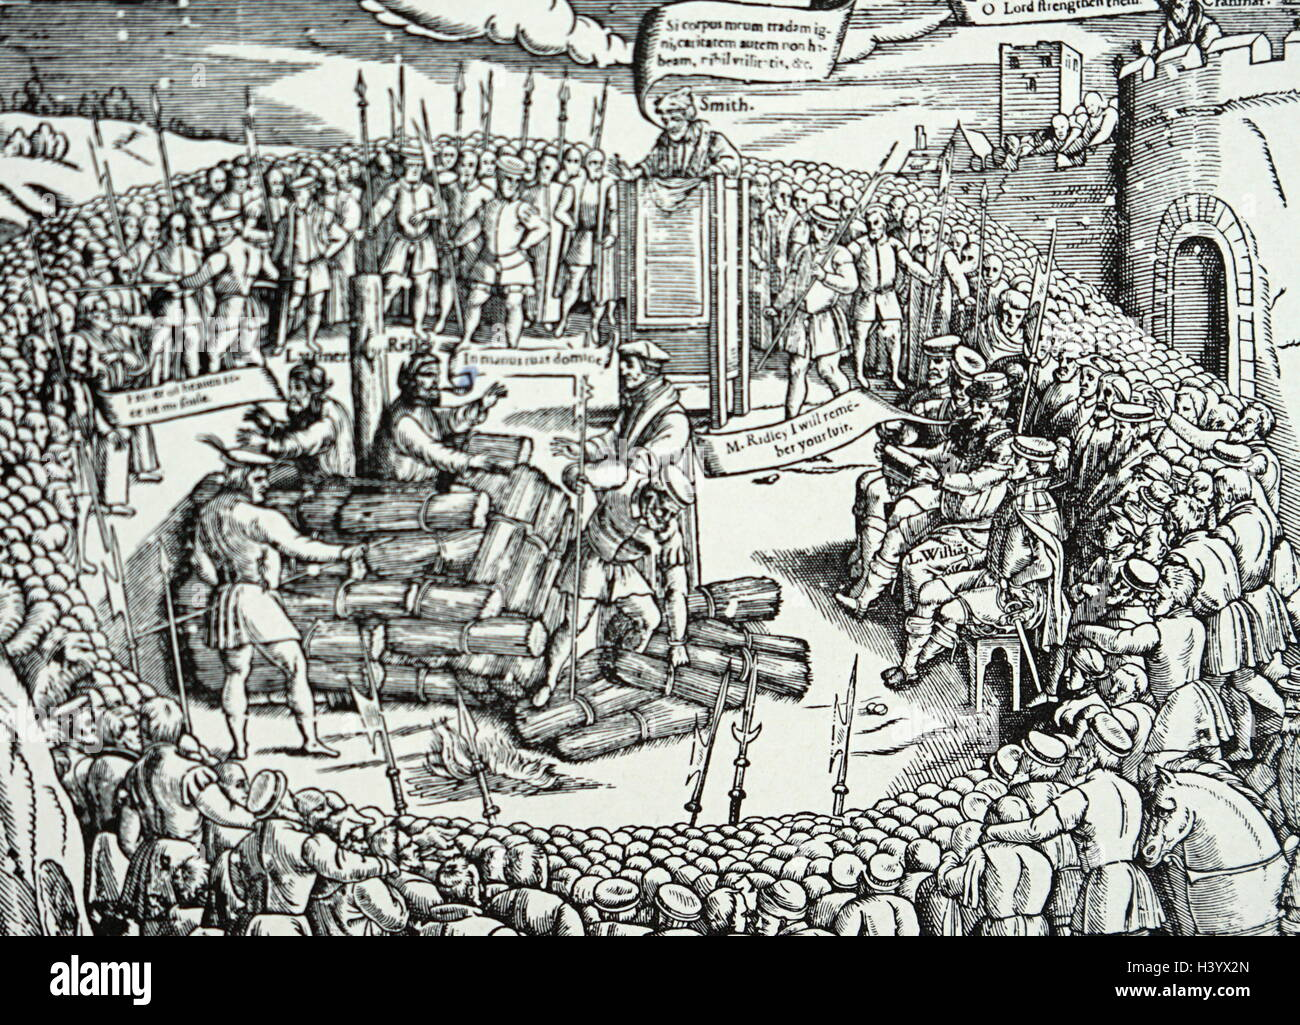 Engraving depicting the burning of Nicholas Ridley and Hugh Latimer - Stock Image